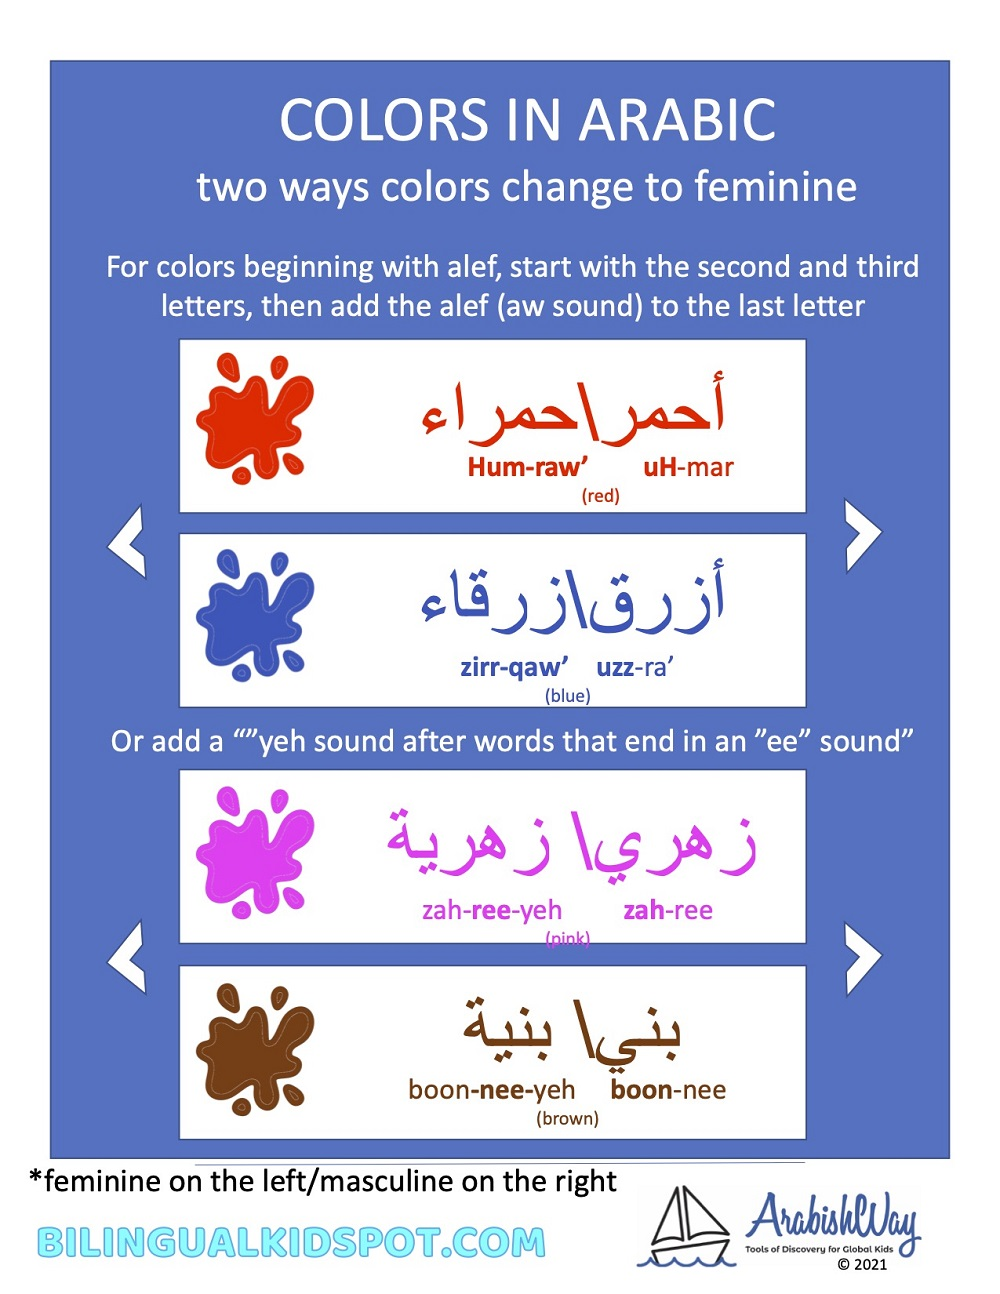 Colors with gender - in Arabic